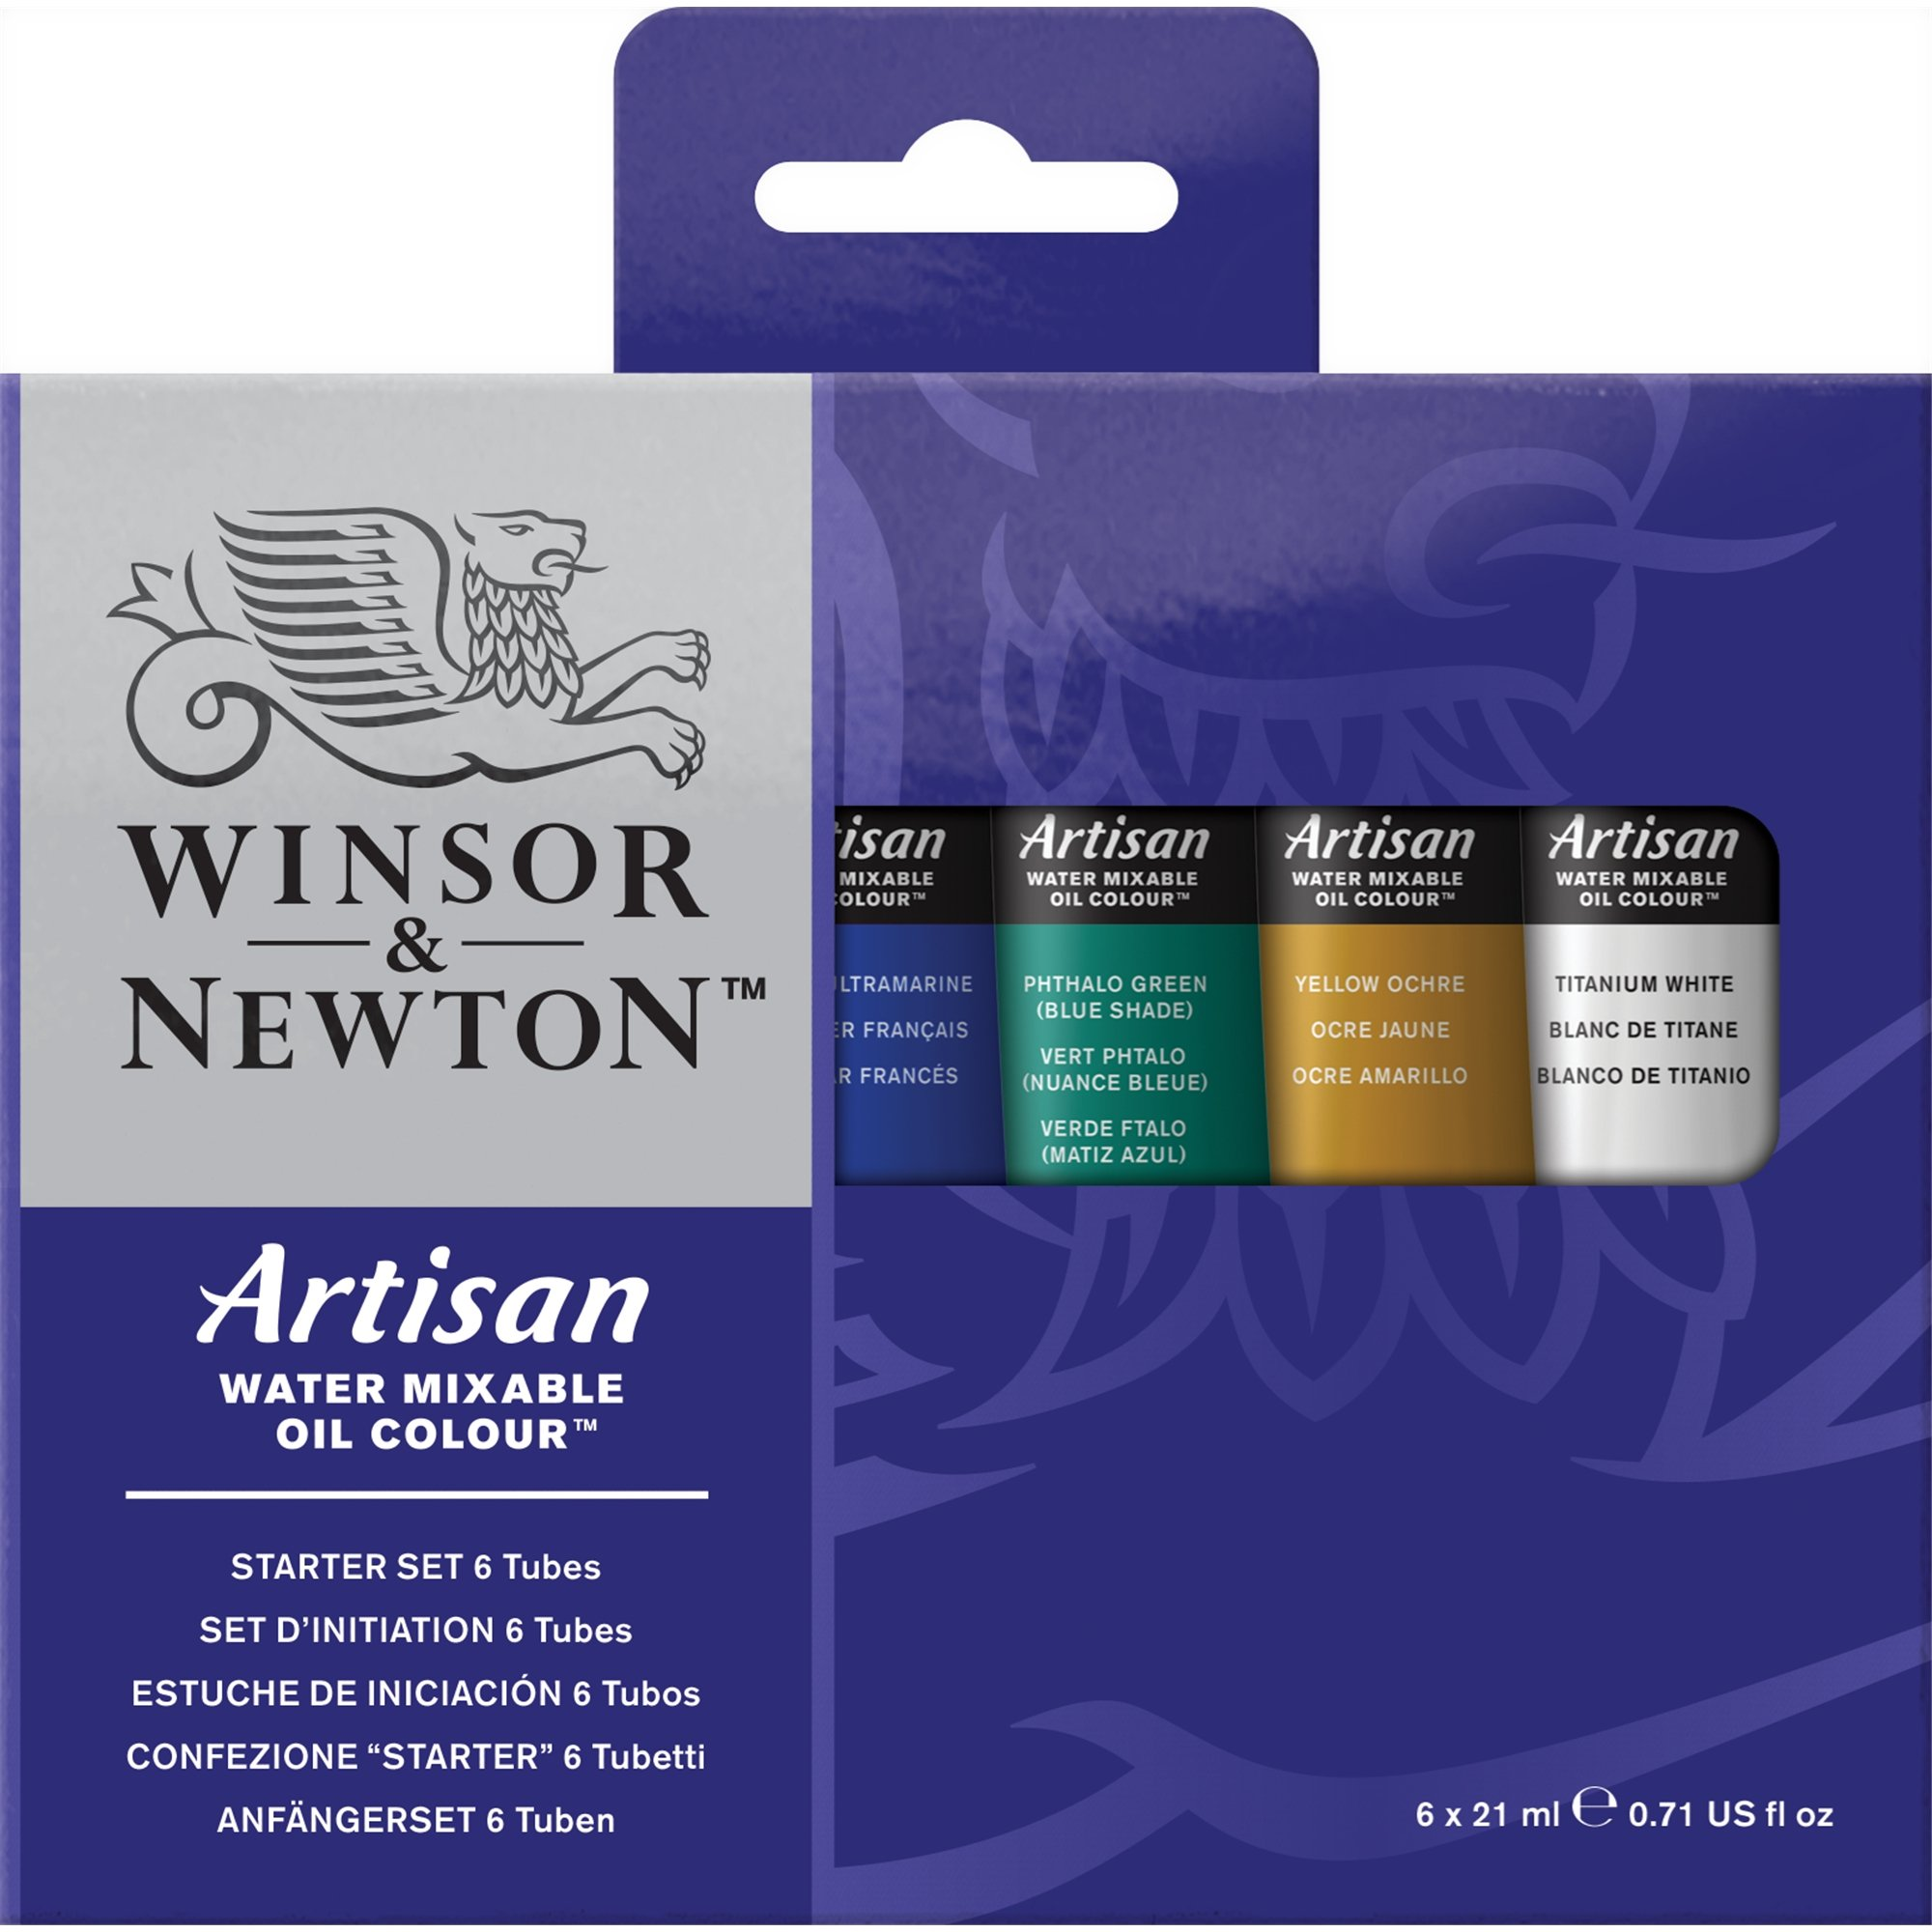 Winsor & Newton Artisan Water Mixable Oil Colour Starter Set, Six 21ml Tubes by Winsor & Newton